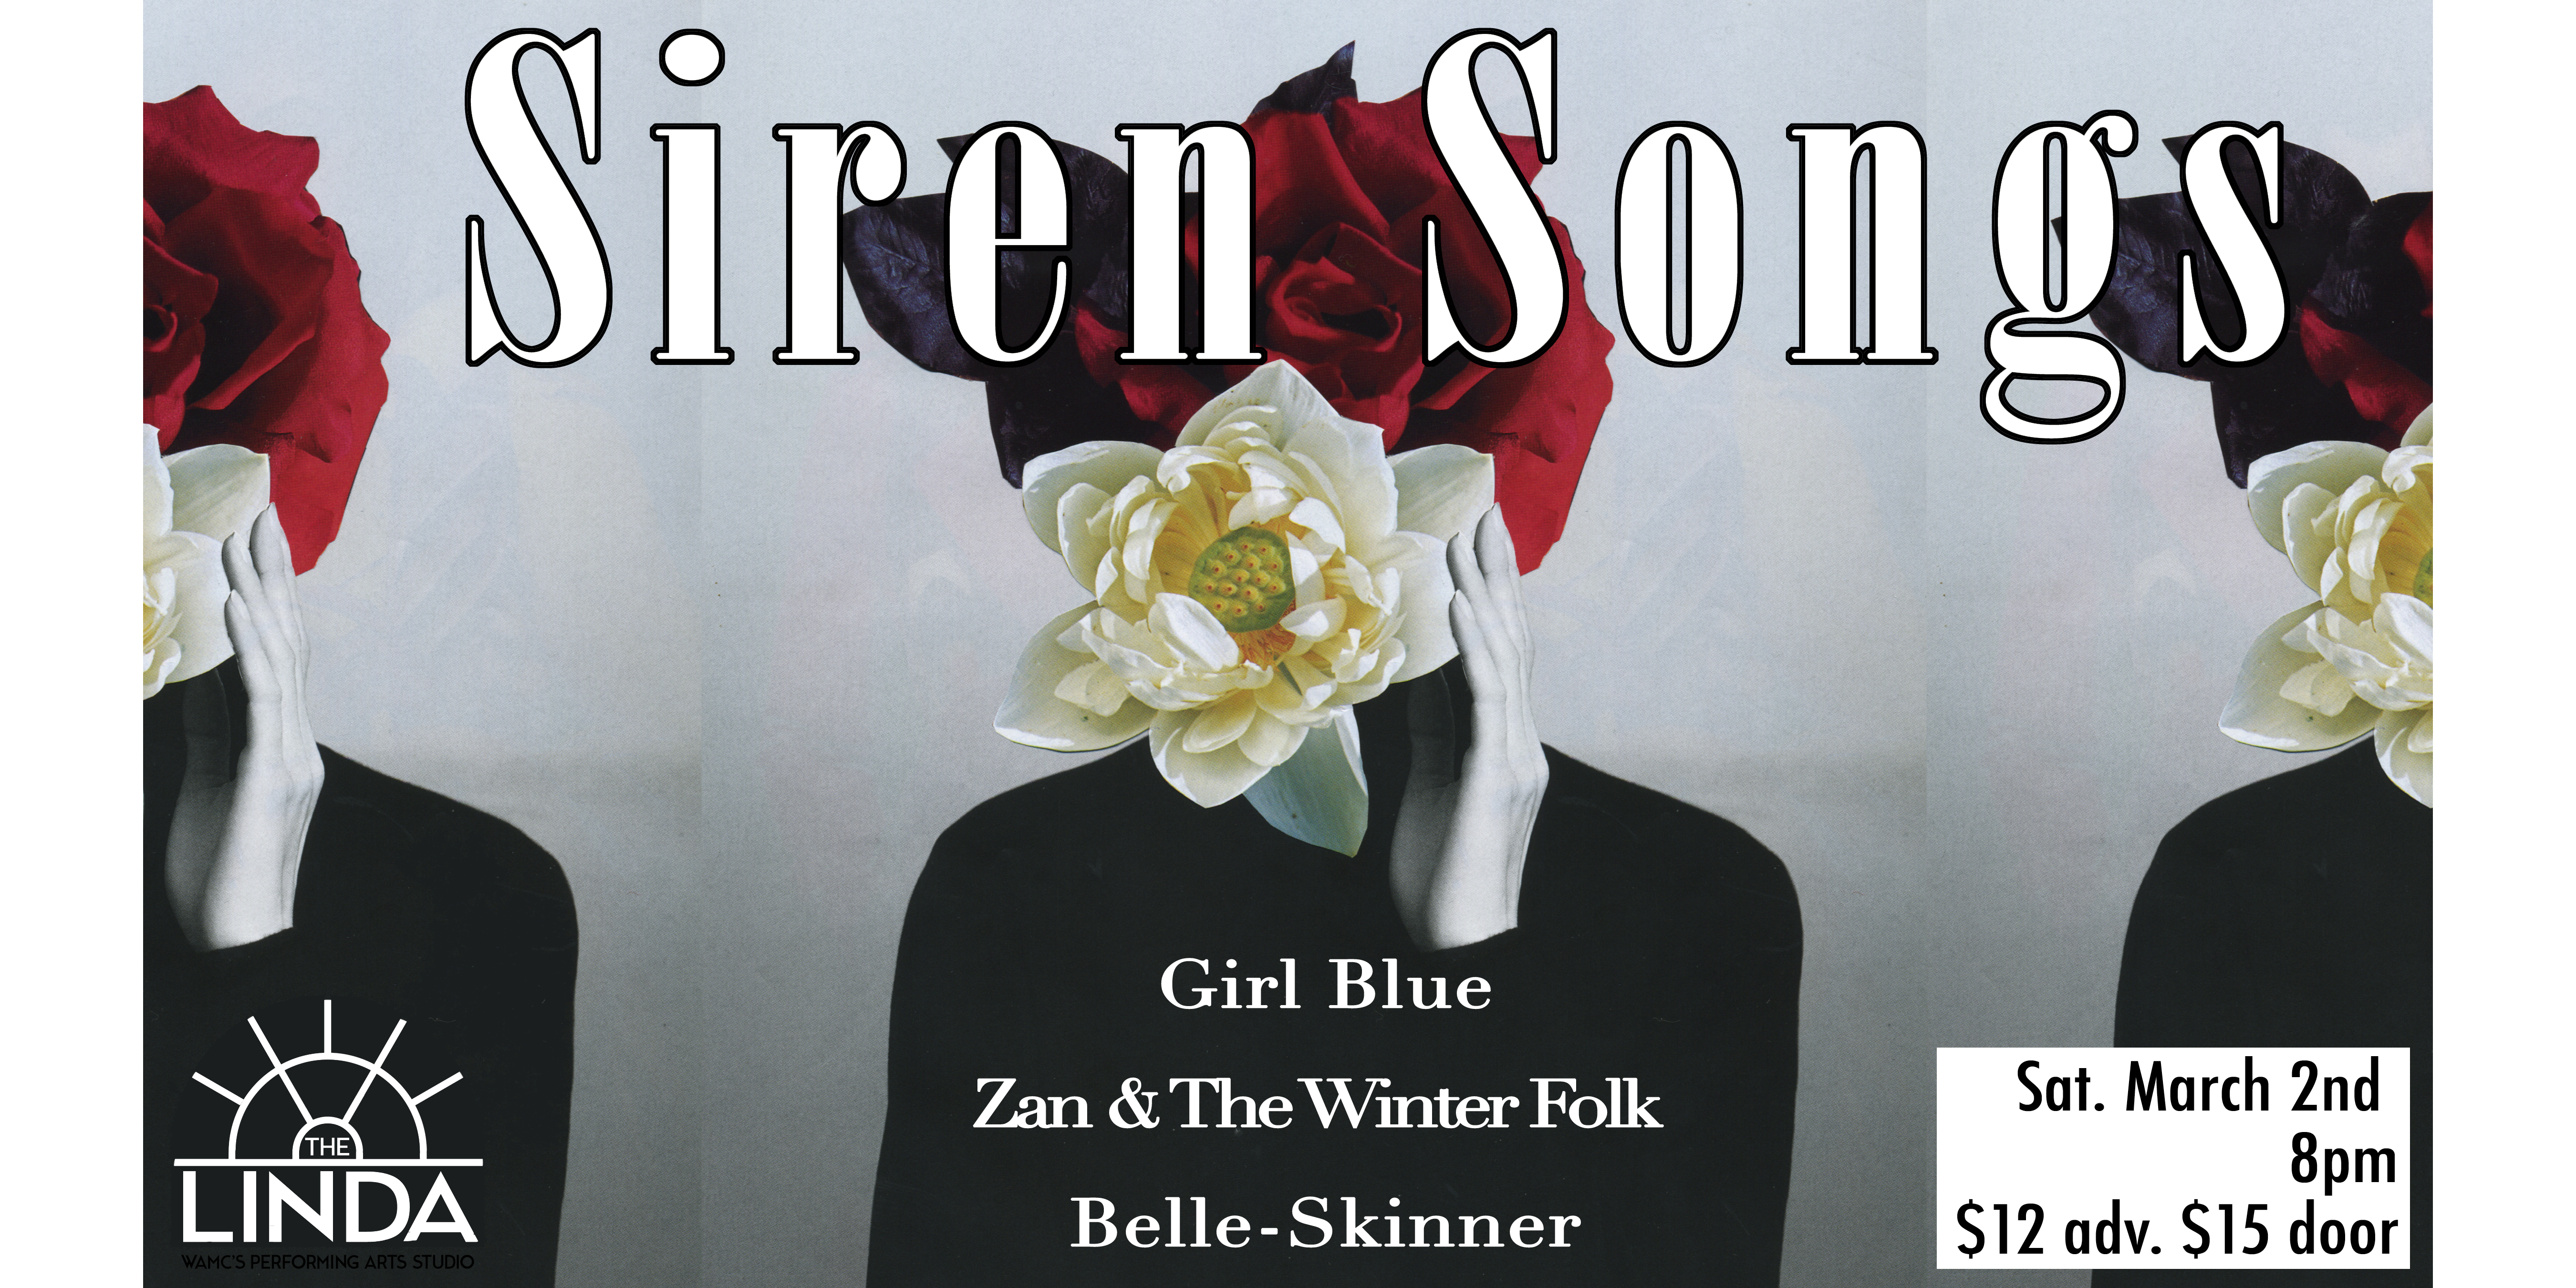 SIREN SONGS: featuring Girl Blue, Zan and the Winter Folk, and Belle Skinner